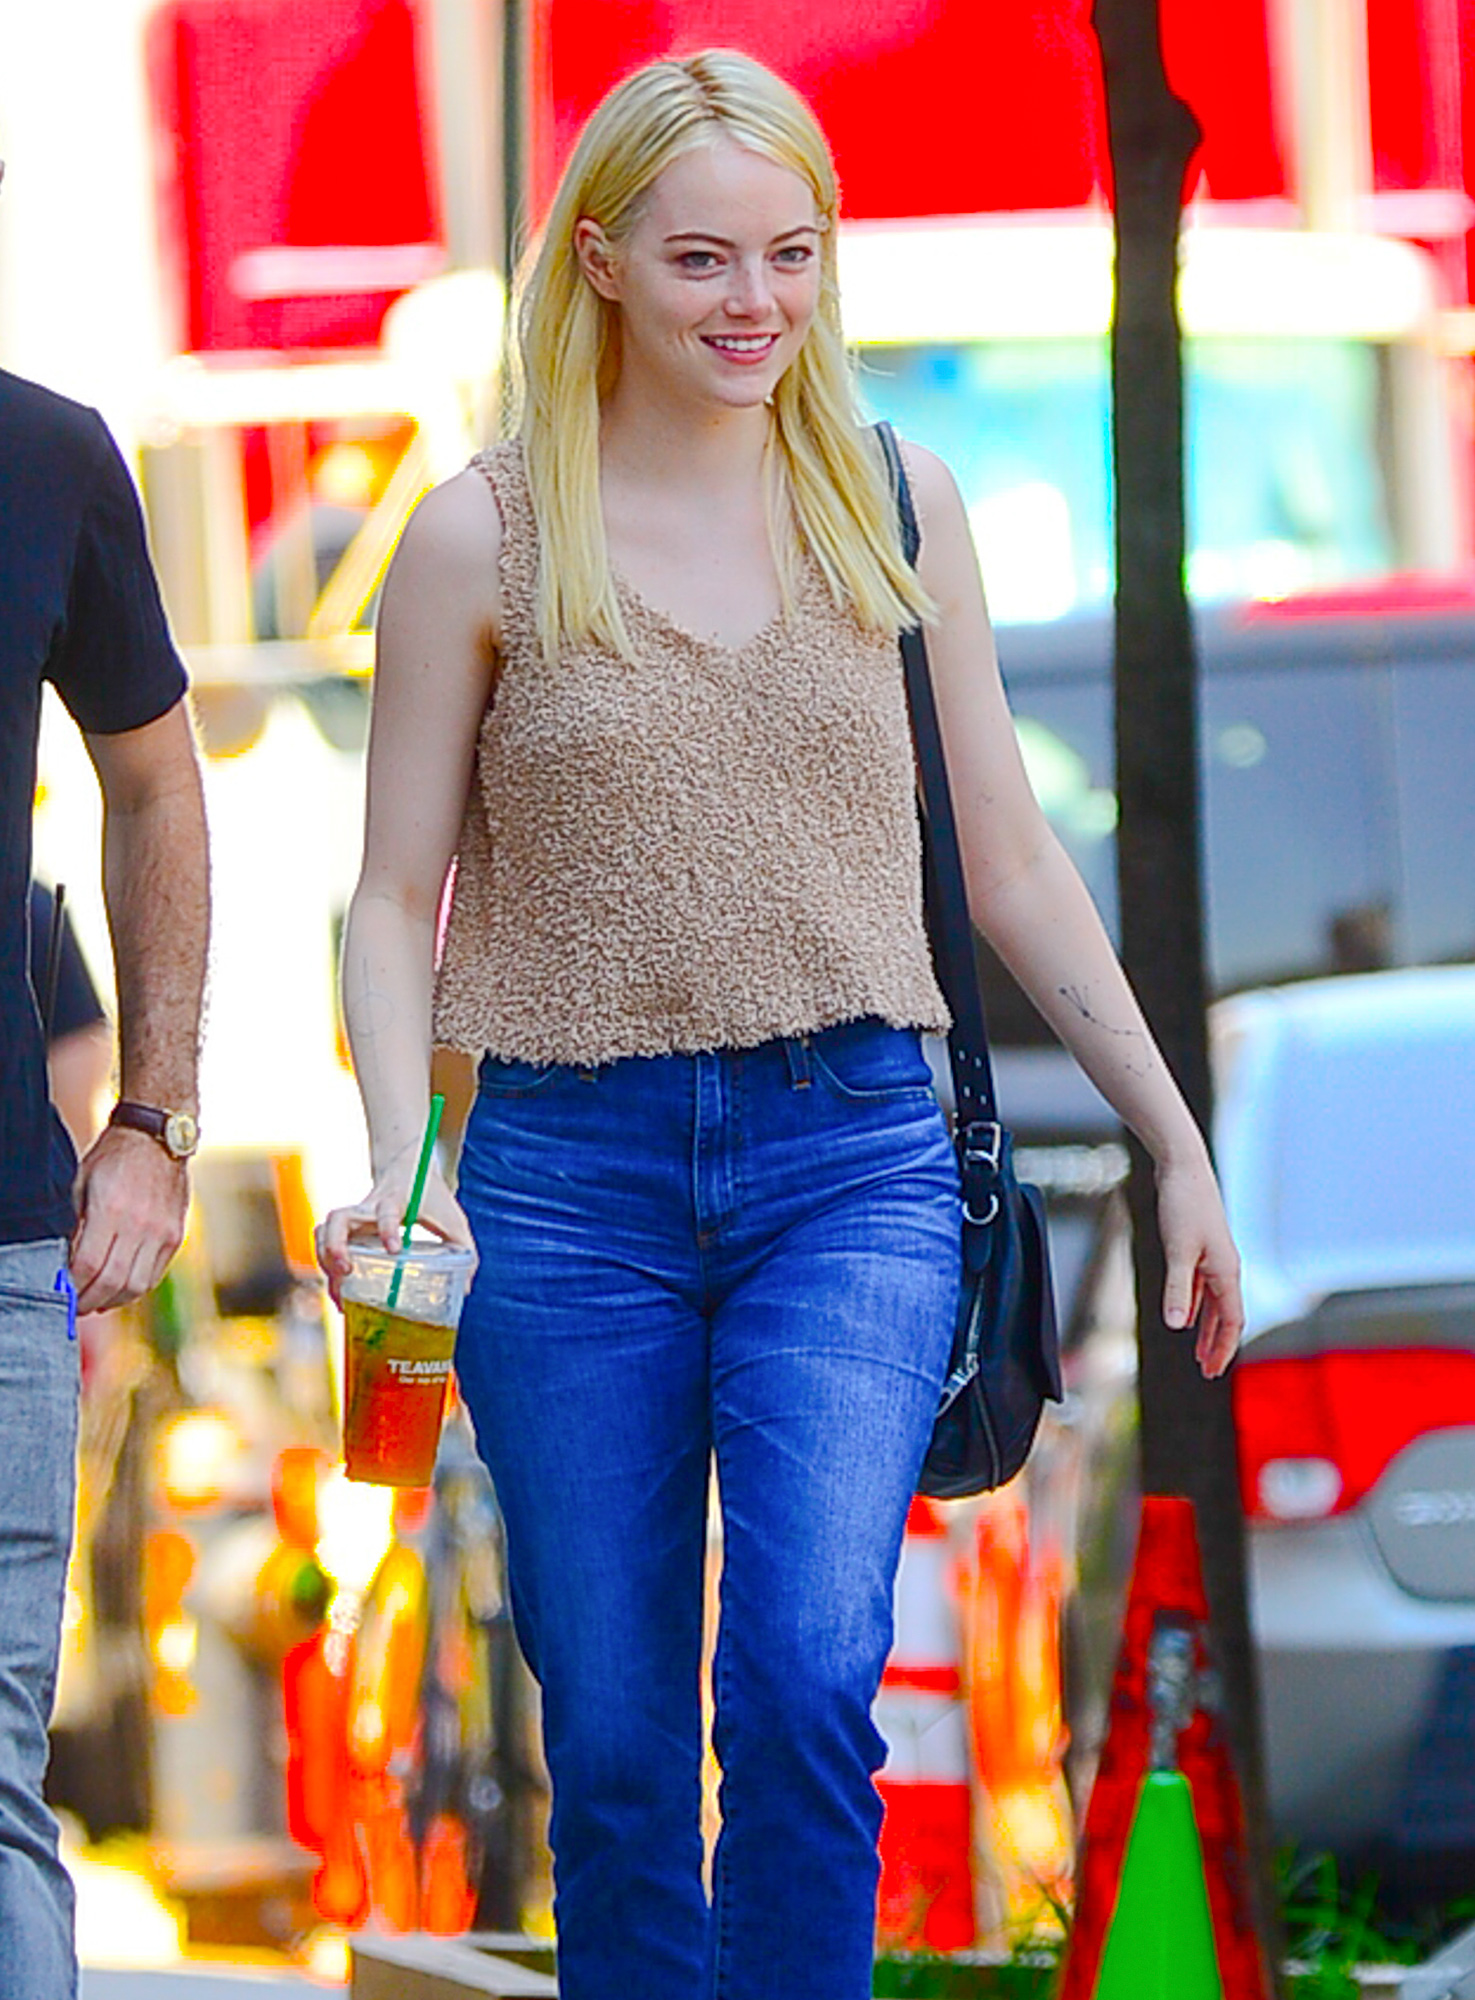 EXCLUSIVE: Emma Stone is spotted on the set of 'Maniac' in New York